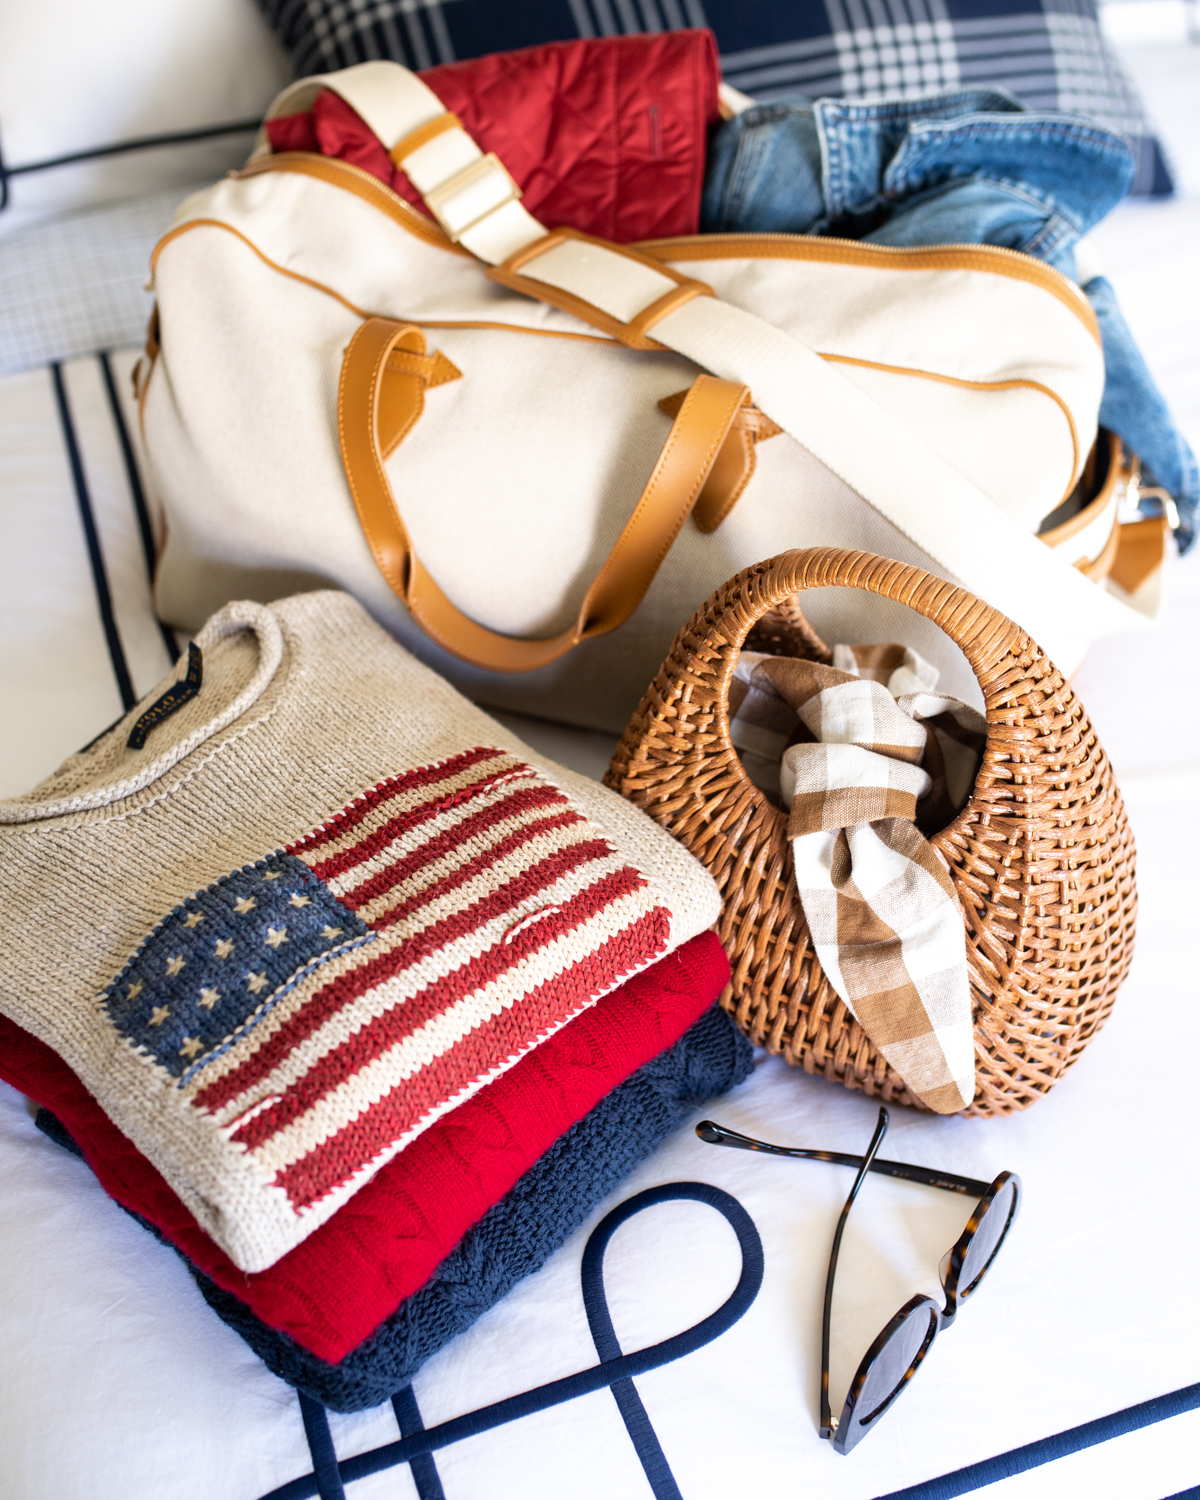 4th of July Packing List x Stacie Flinner-7